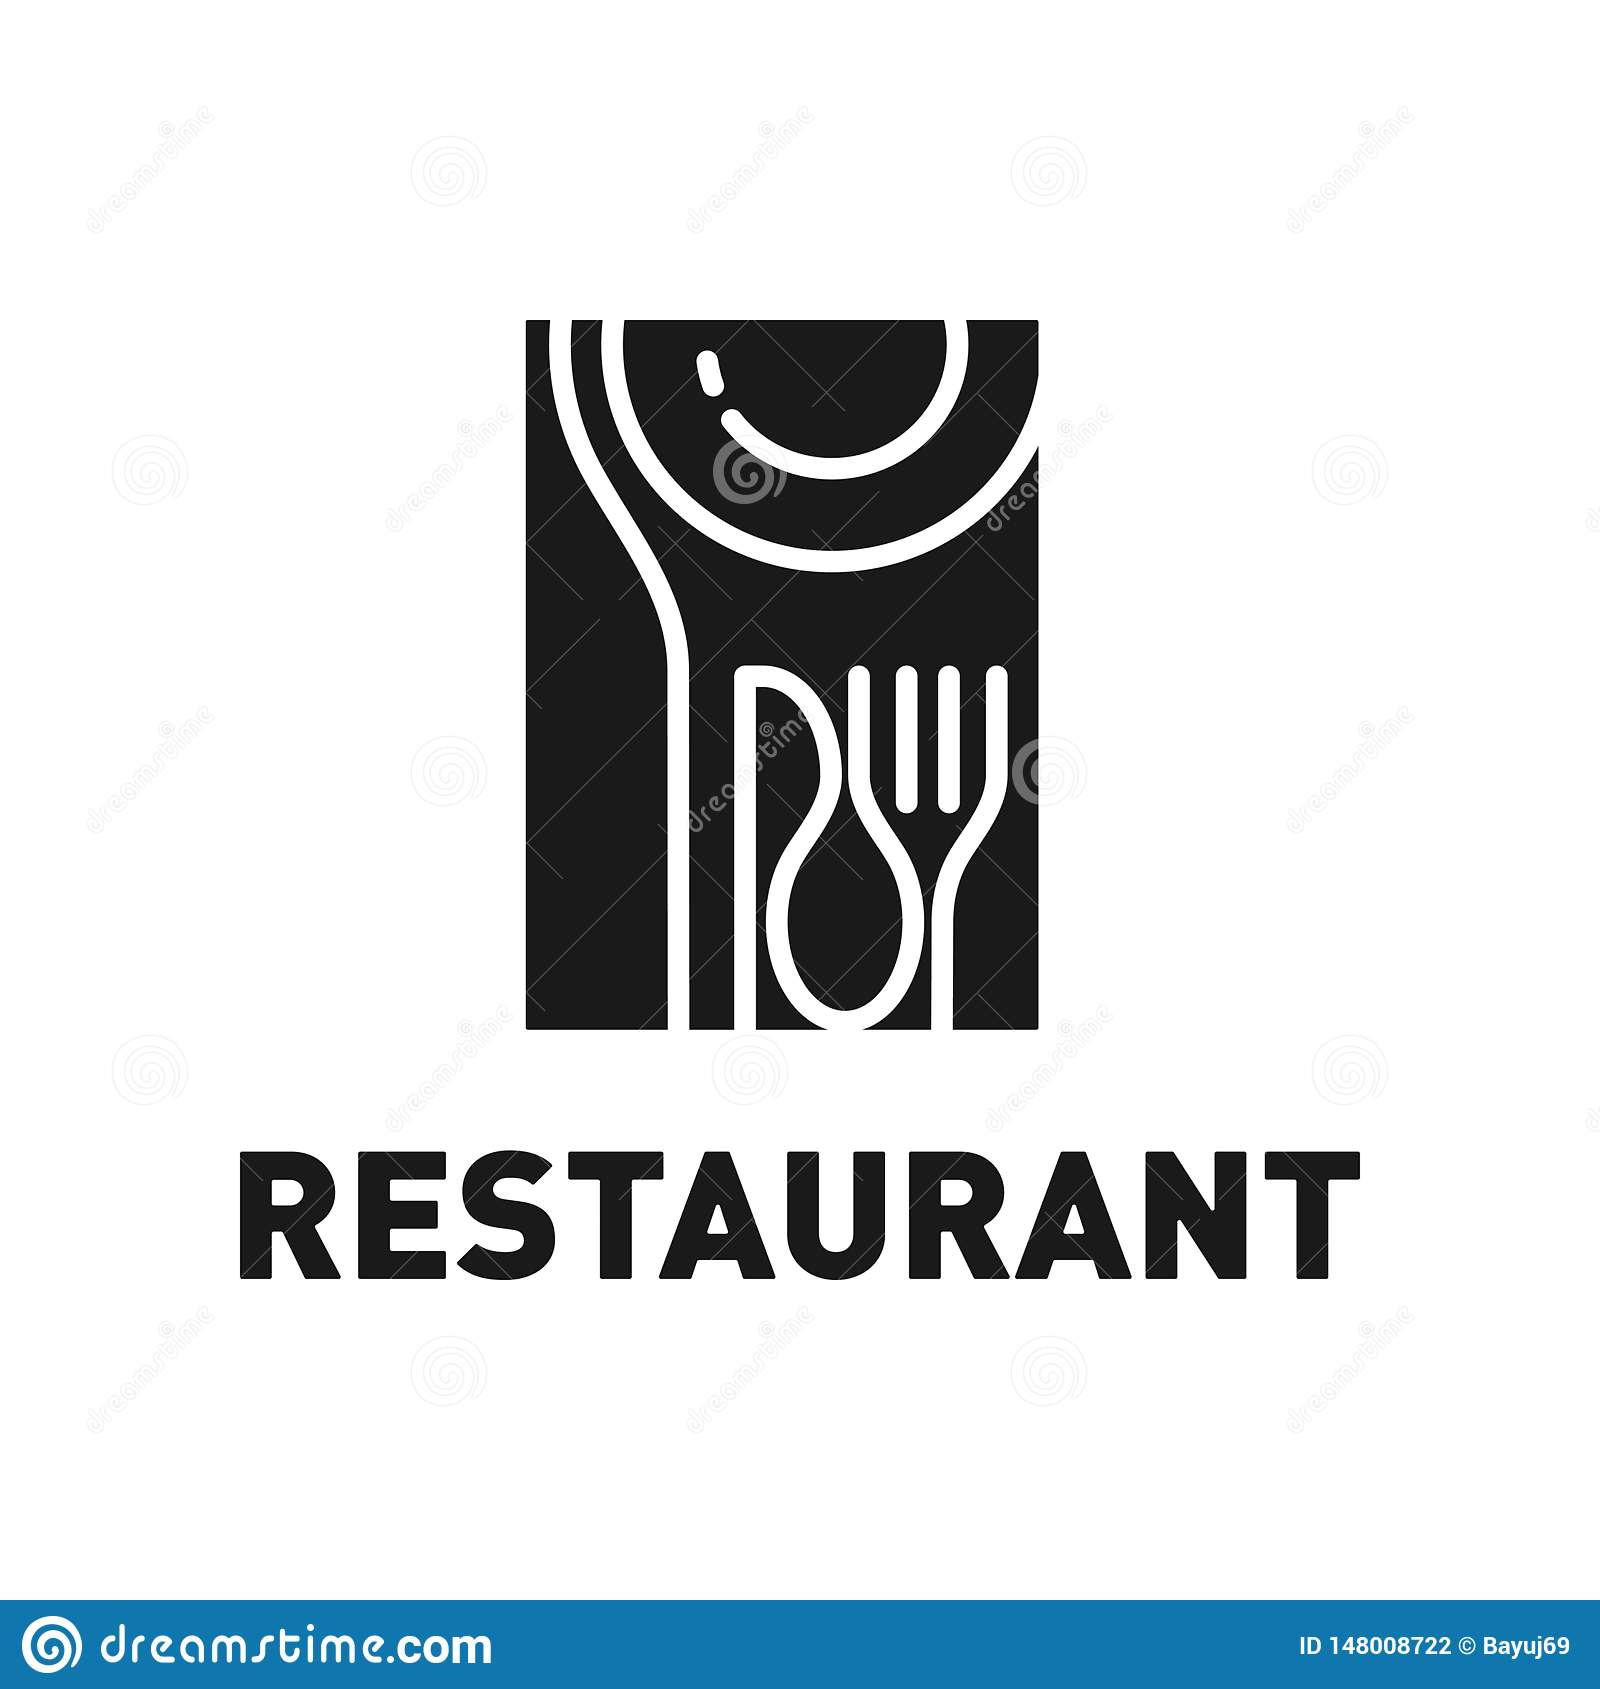 Vintage Restaurant Logo Design Inspiration Stock Vector Illustration Of Knife Design 148008722